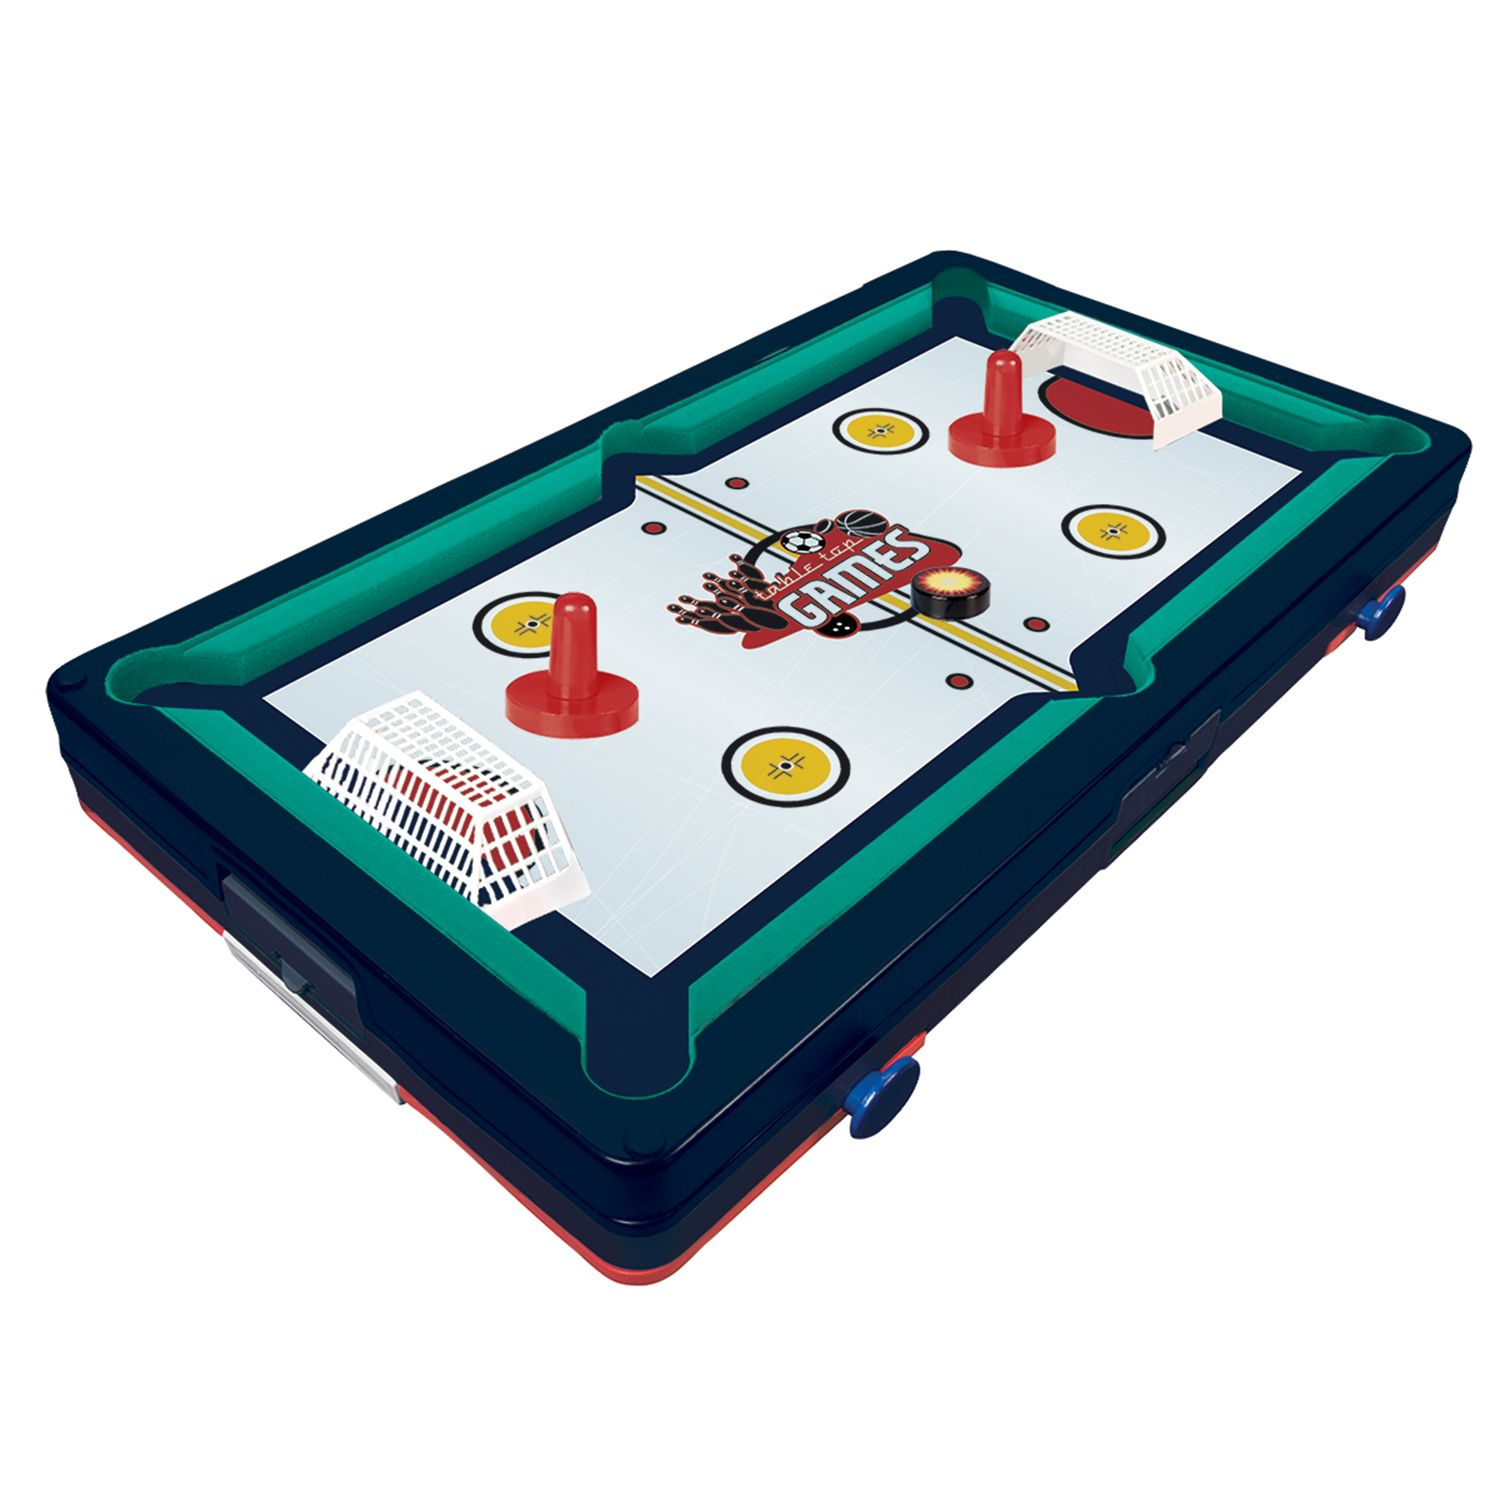 Franklin 5 In 1 Sports Center Table Top Game